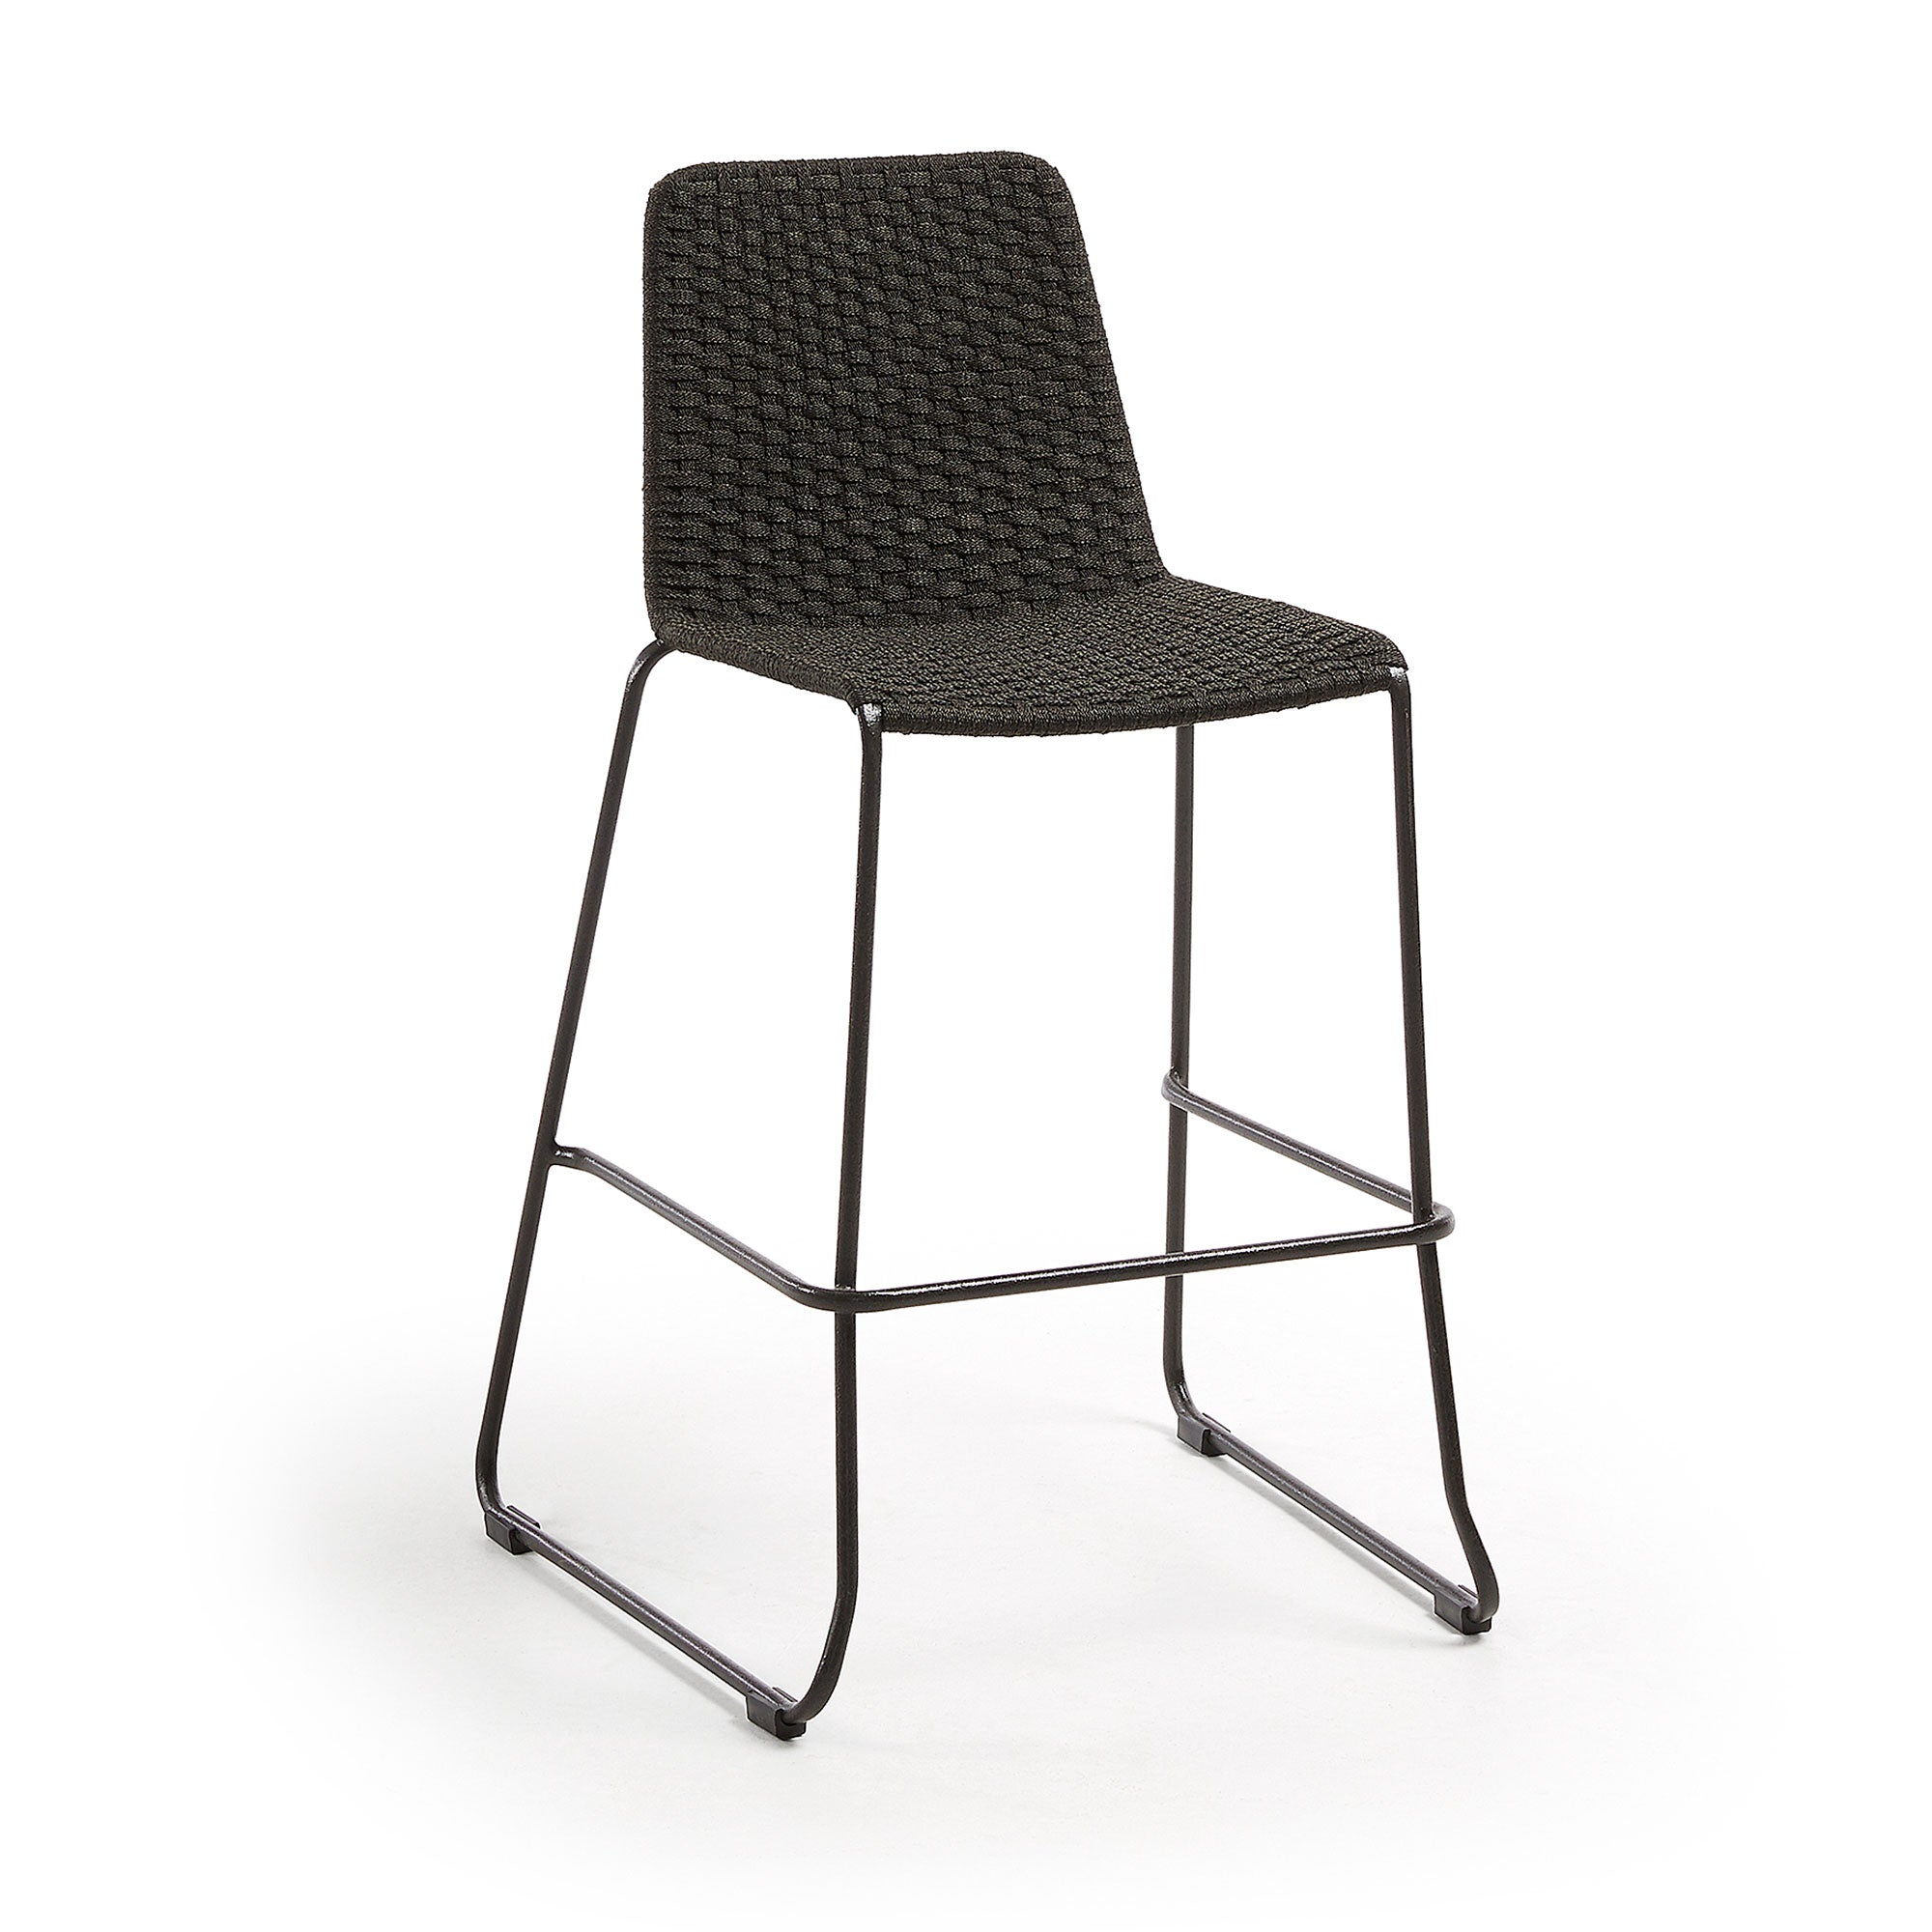 MEGGIE Barstool - dark grey, Barstool - Home-Buy Interiors